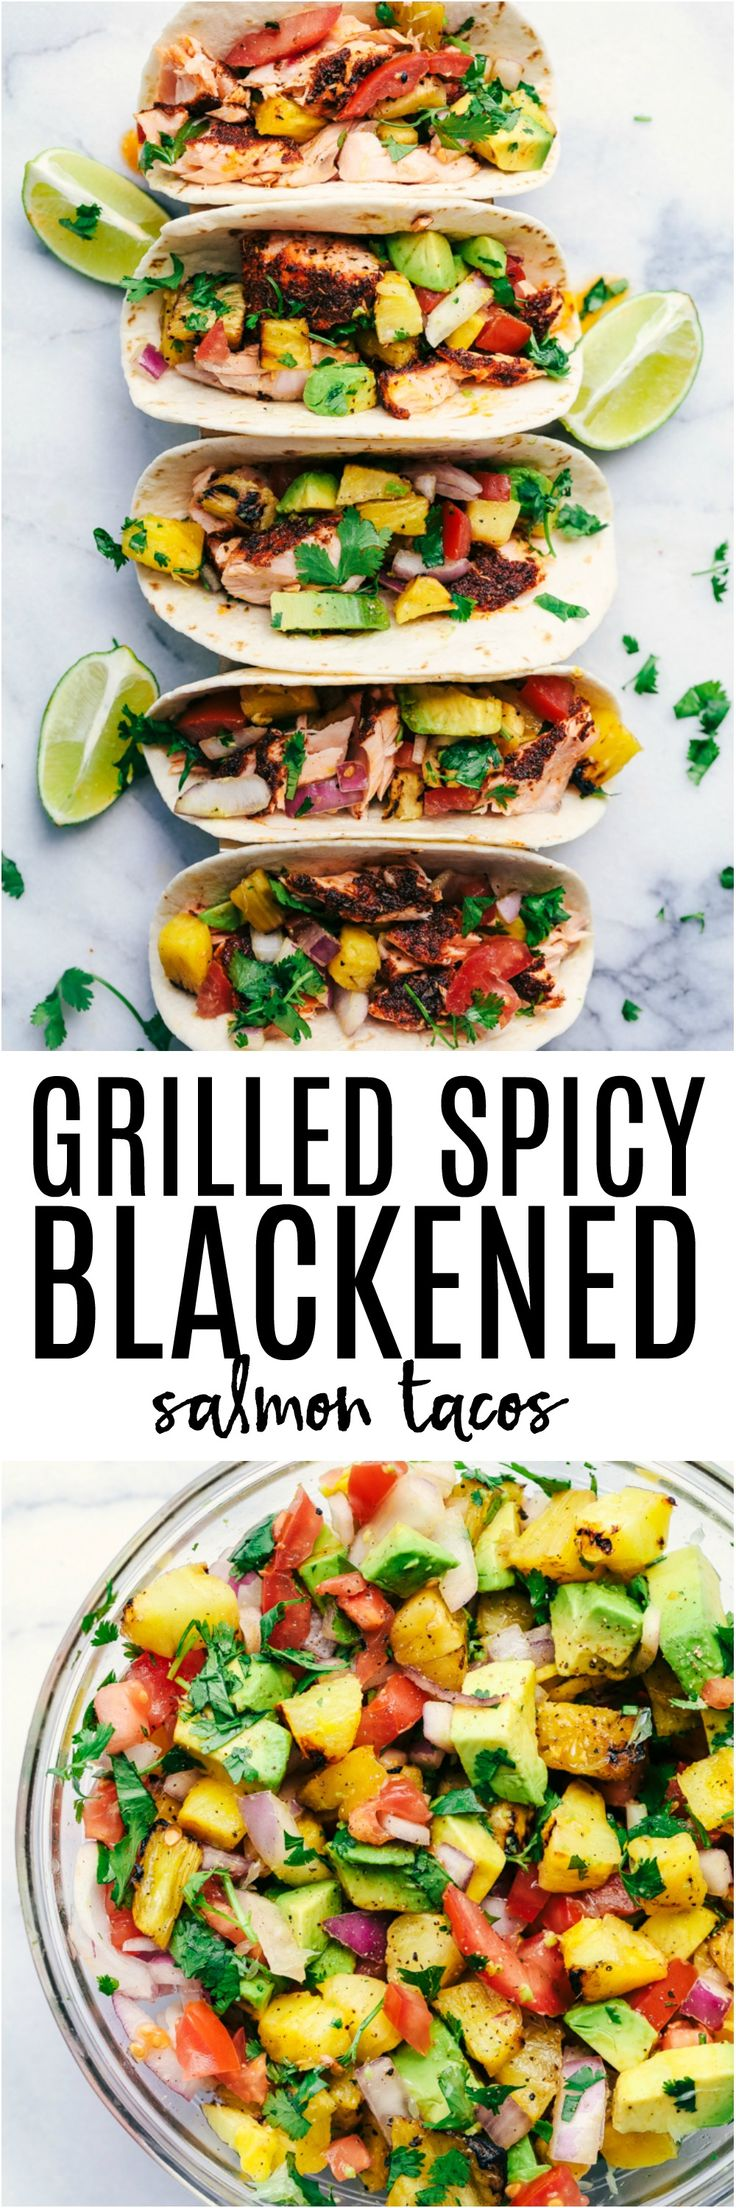 Grilled Spicy Blackened Salmon Tacos are grilled to perfection with a delicious spicy crust.  They get topped with a fresh grilled pineapple avocado salsa.  These tacos are fresh and light and the flavors are out of this world!